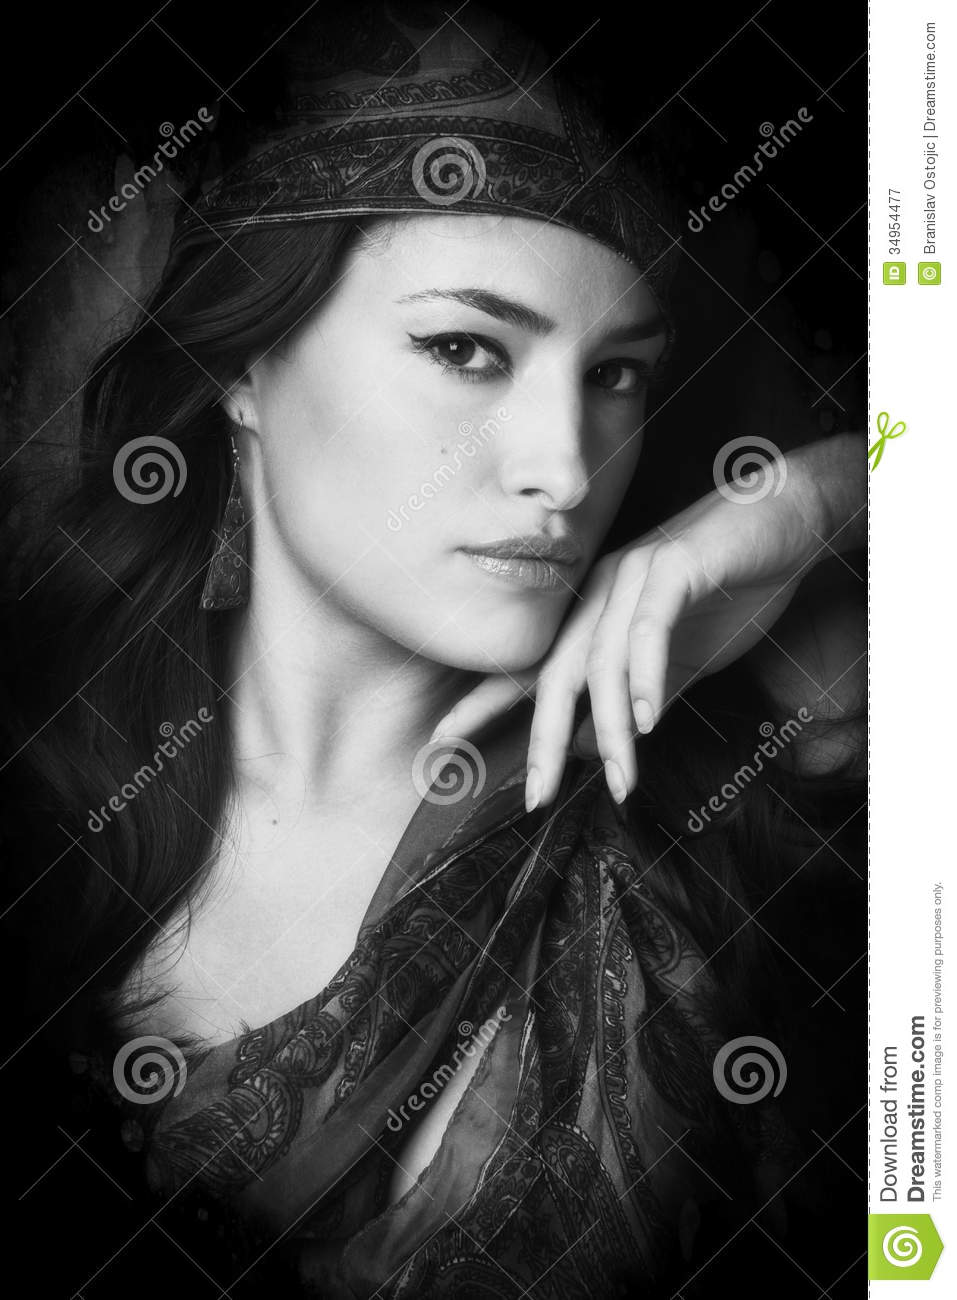 Black And White Photography Woman As Temptress : Woman portrait stock image of look earrings scarf